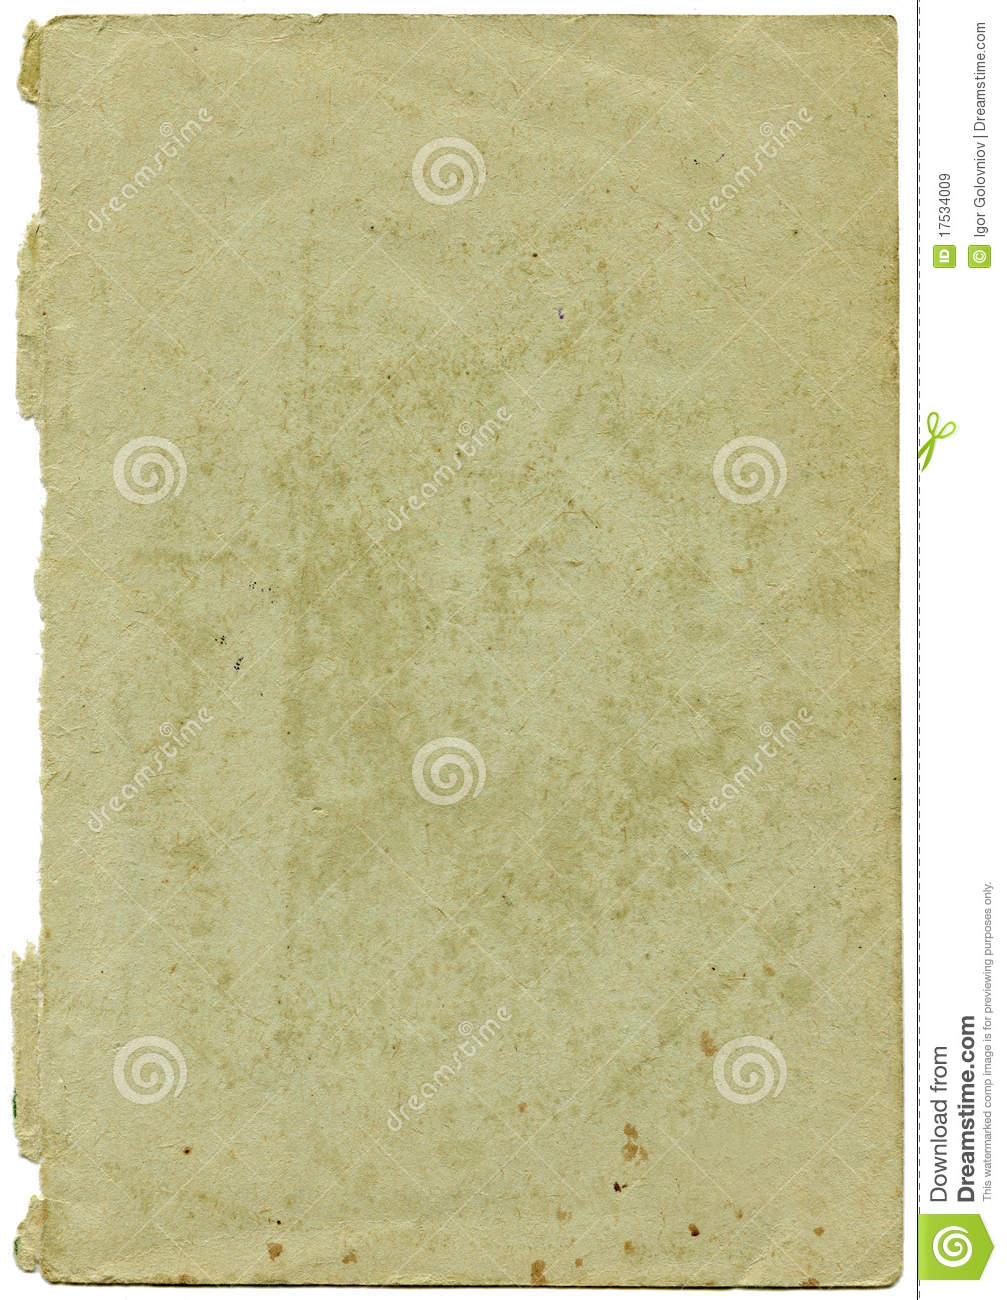 Old and worn paper